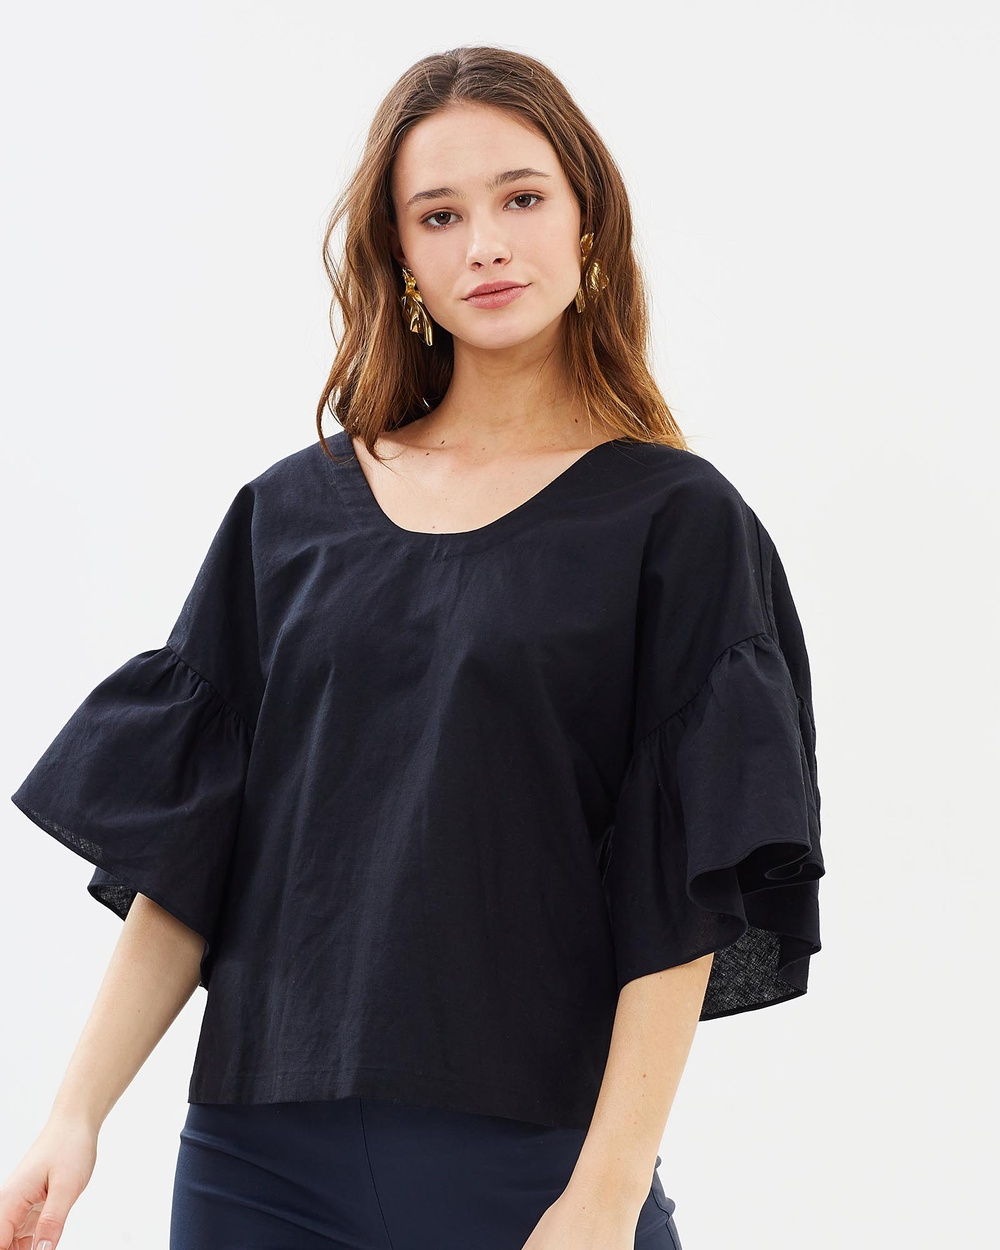 IMONNI Kira Linen Cotton Top Tops Black Kira Linen Cotton Top